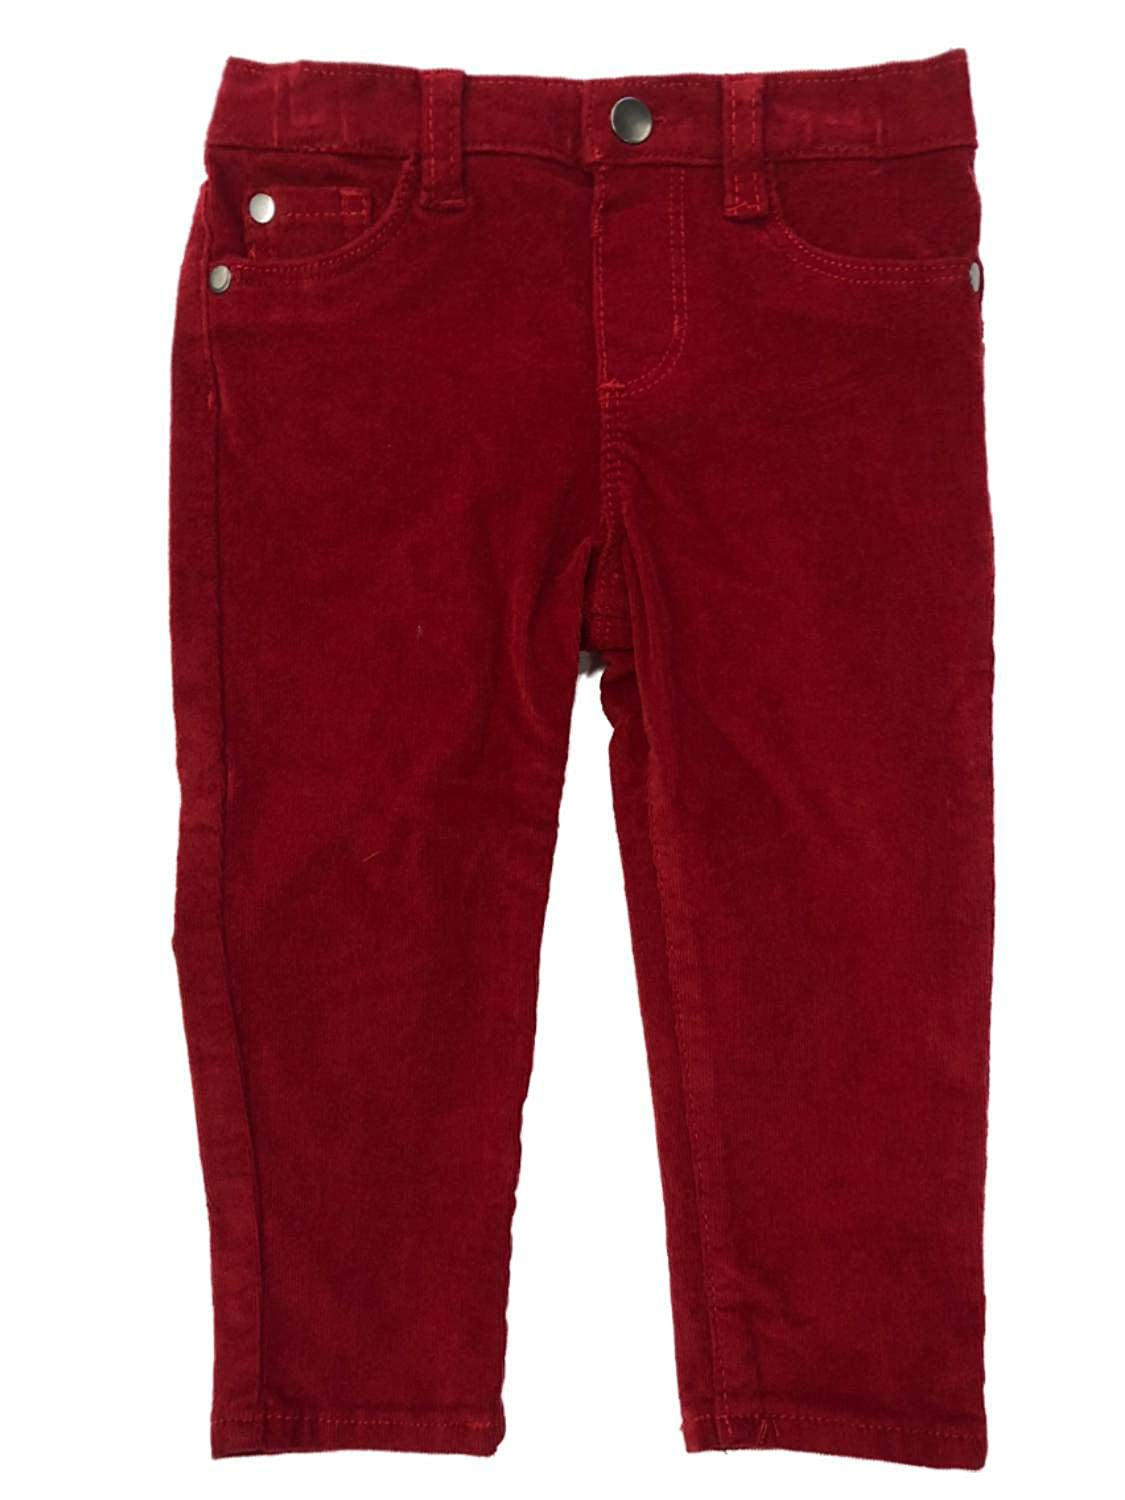 buy online hot-seeling original promo codes Amazon.com: Infant & Toddler Girls & Boys Red Corduroy Jeans ...